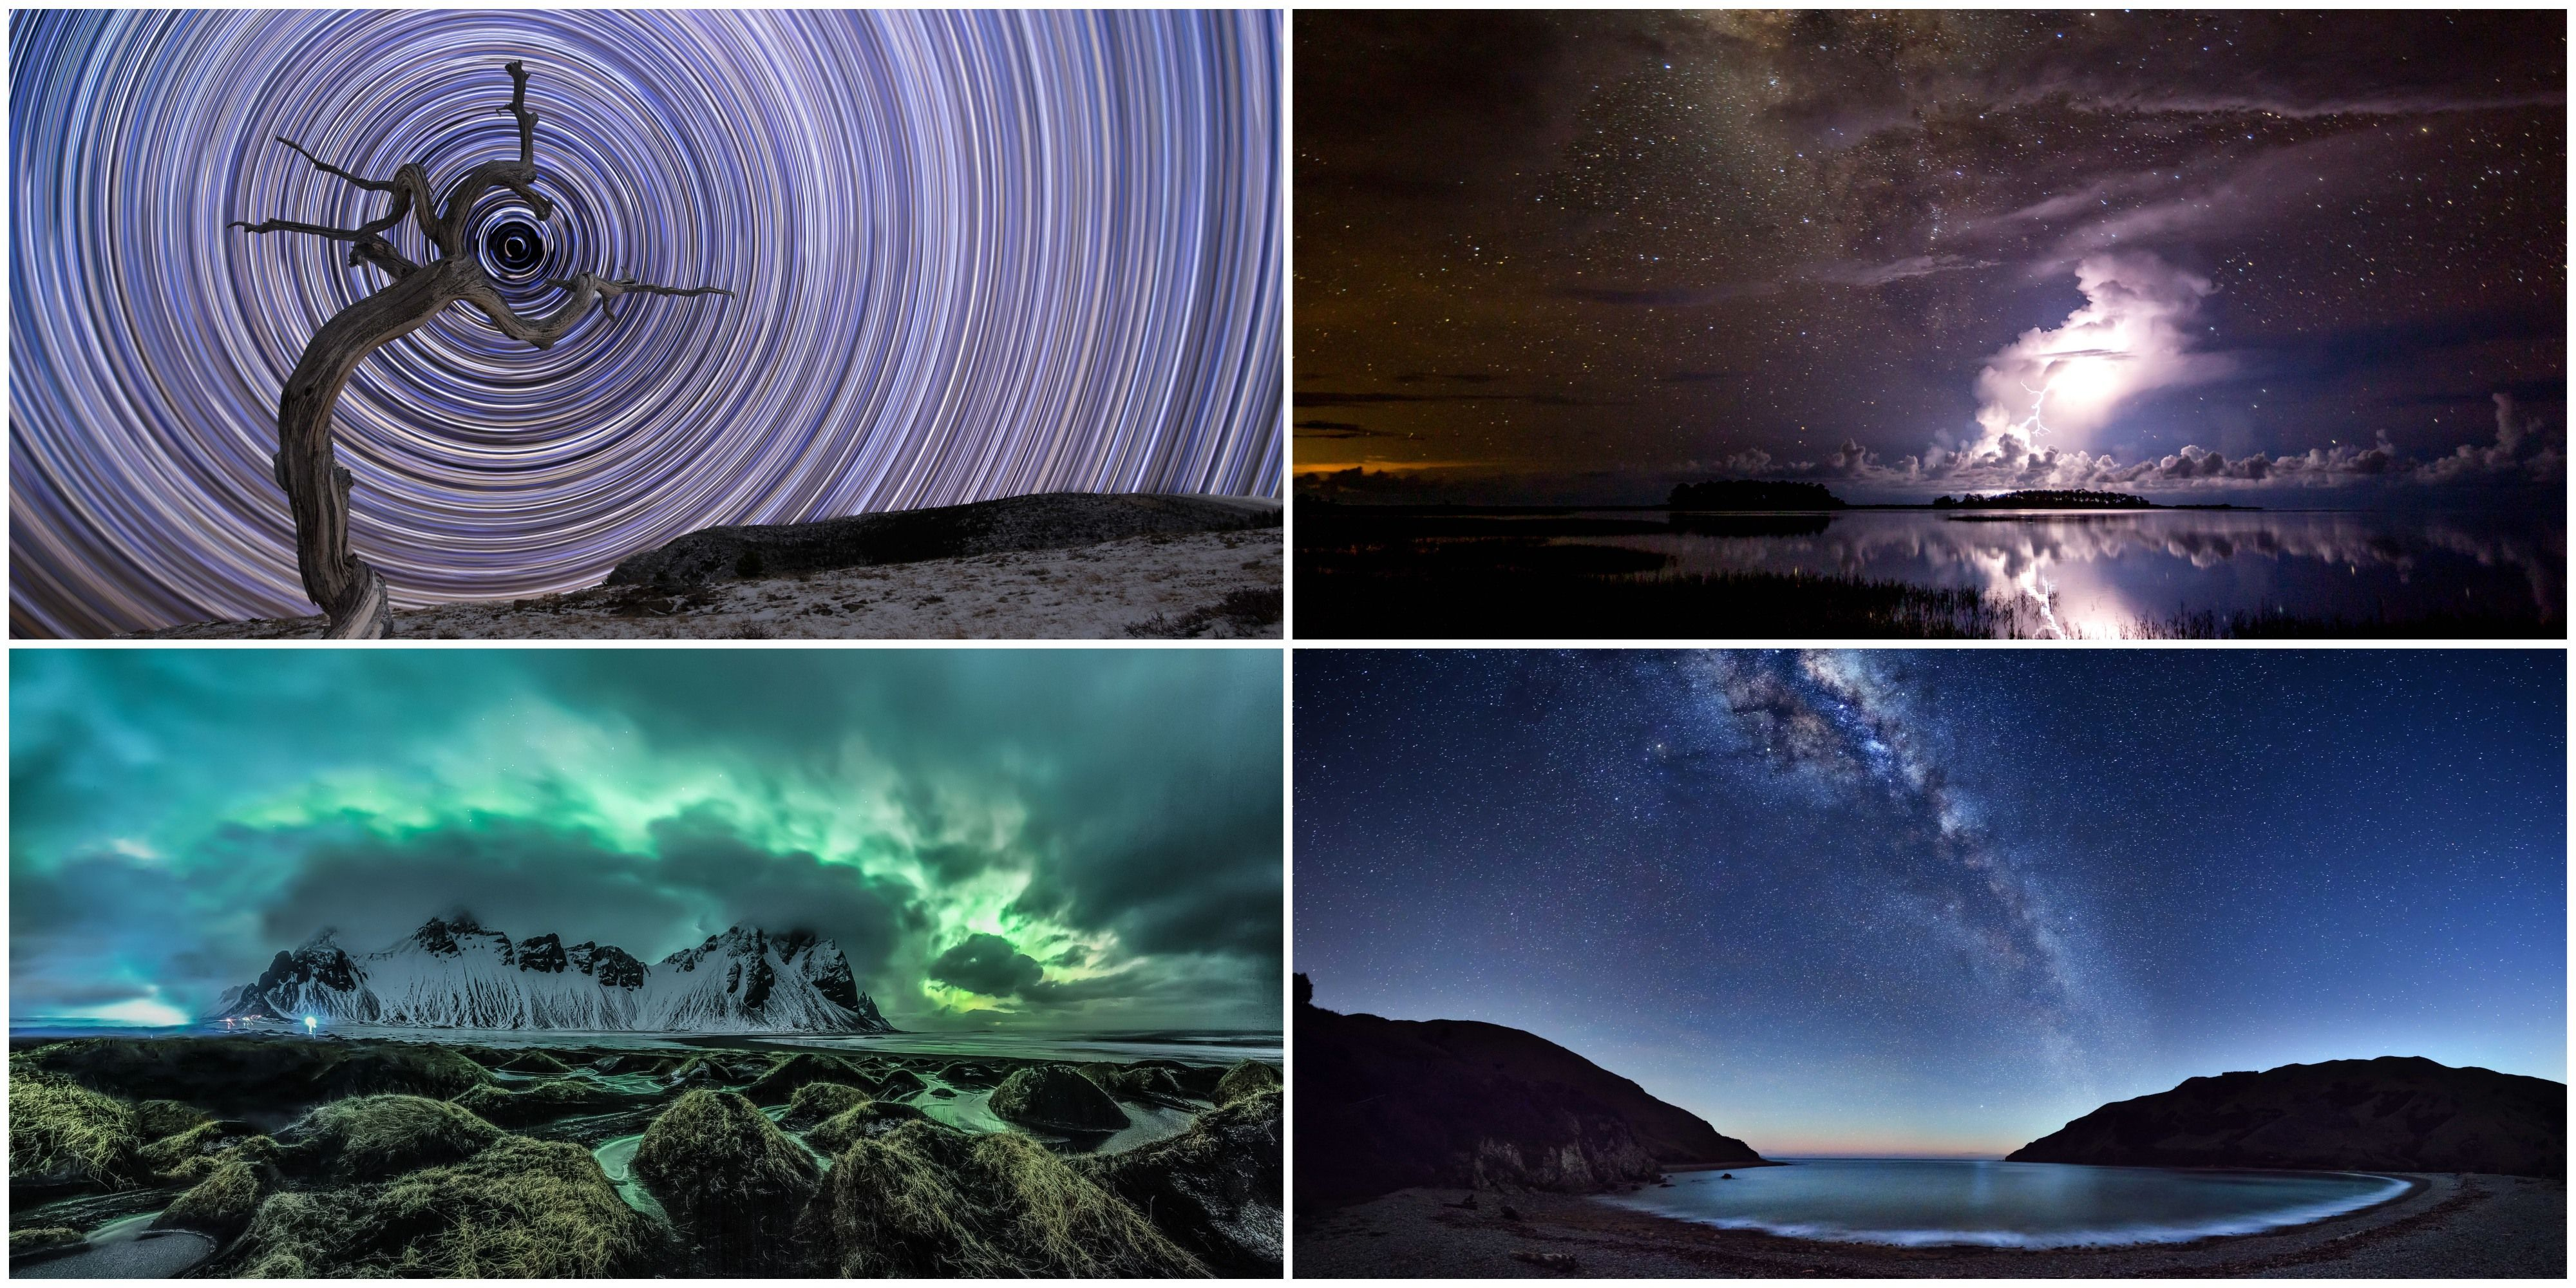 Finalists of the Astronomical Photographer of the Year Contest